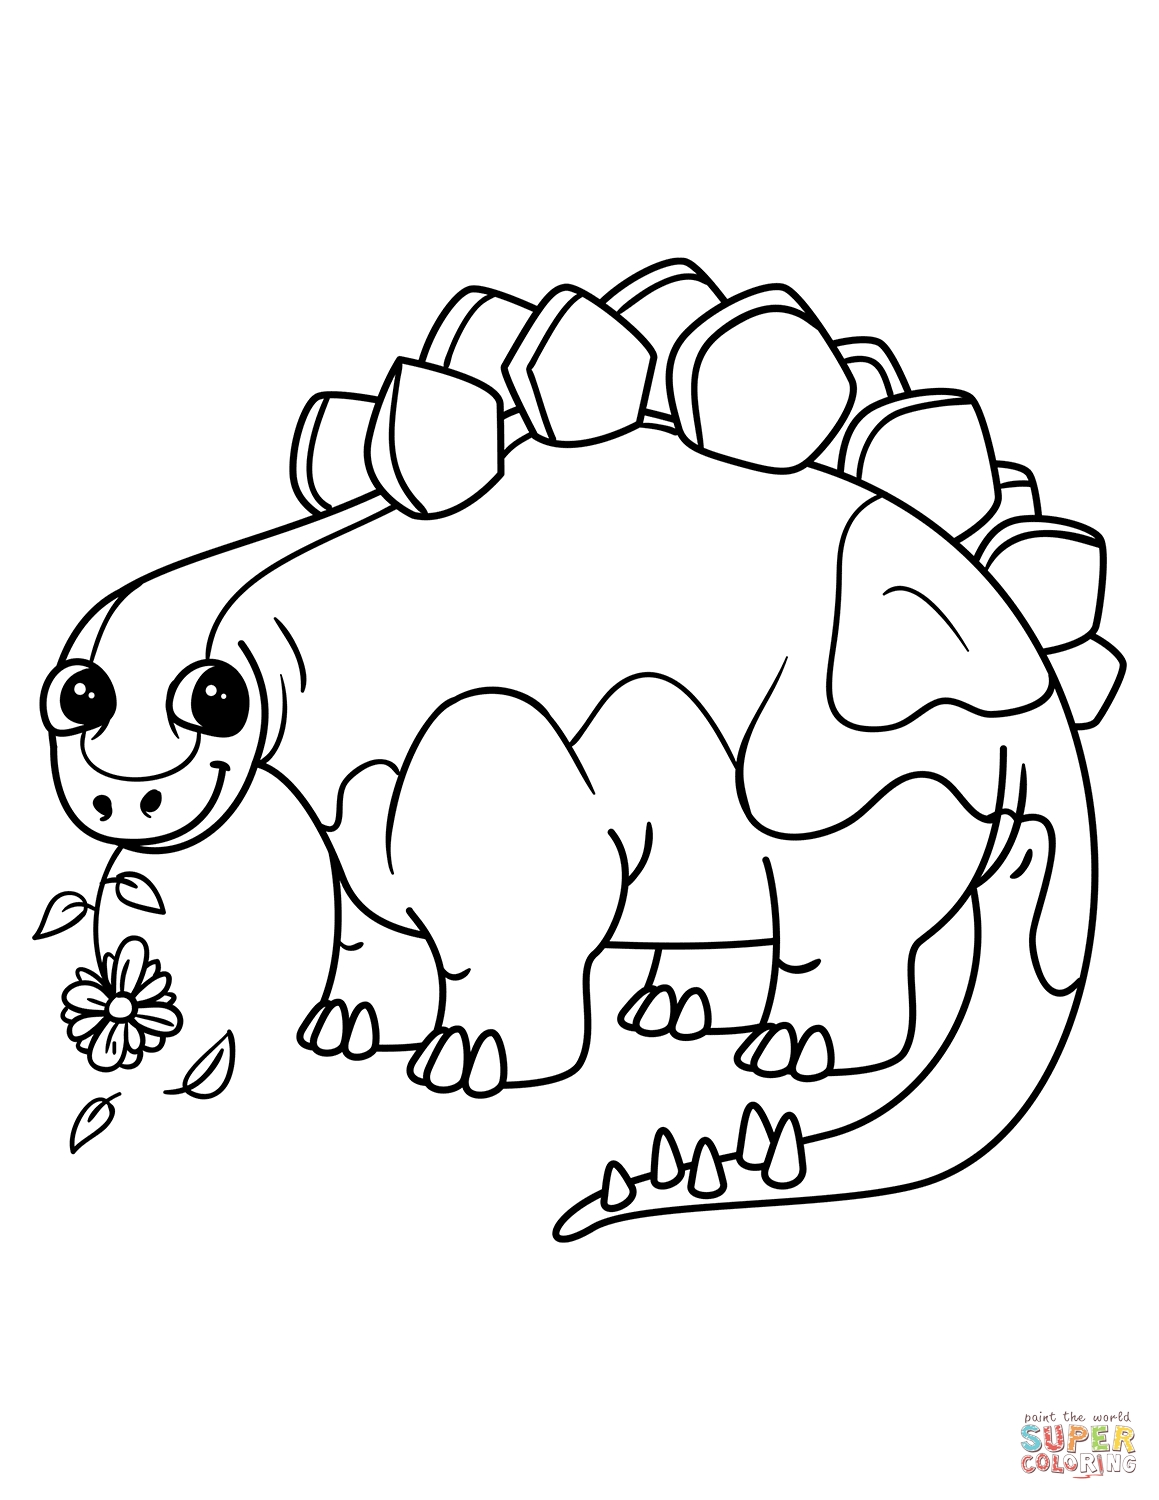 20 Stegosaurus Coloring Page Printable | FREE COLORING PAGES - Part 3